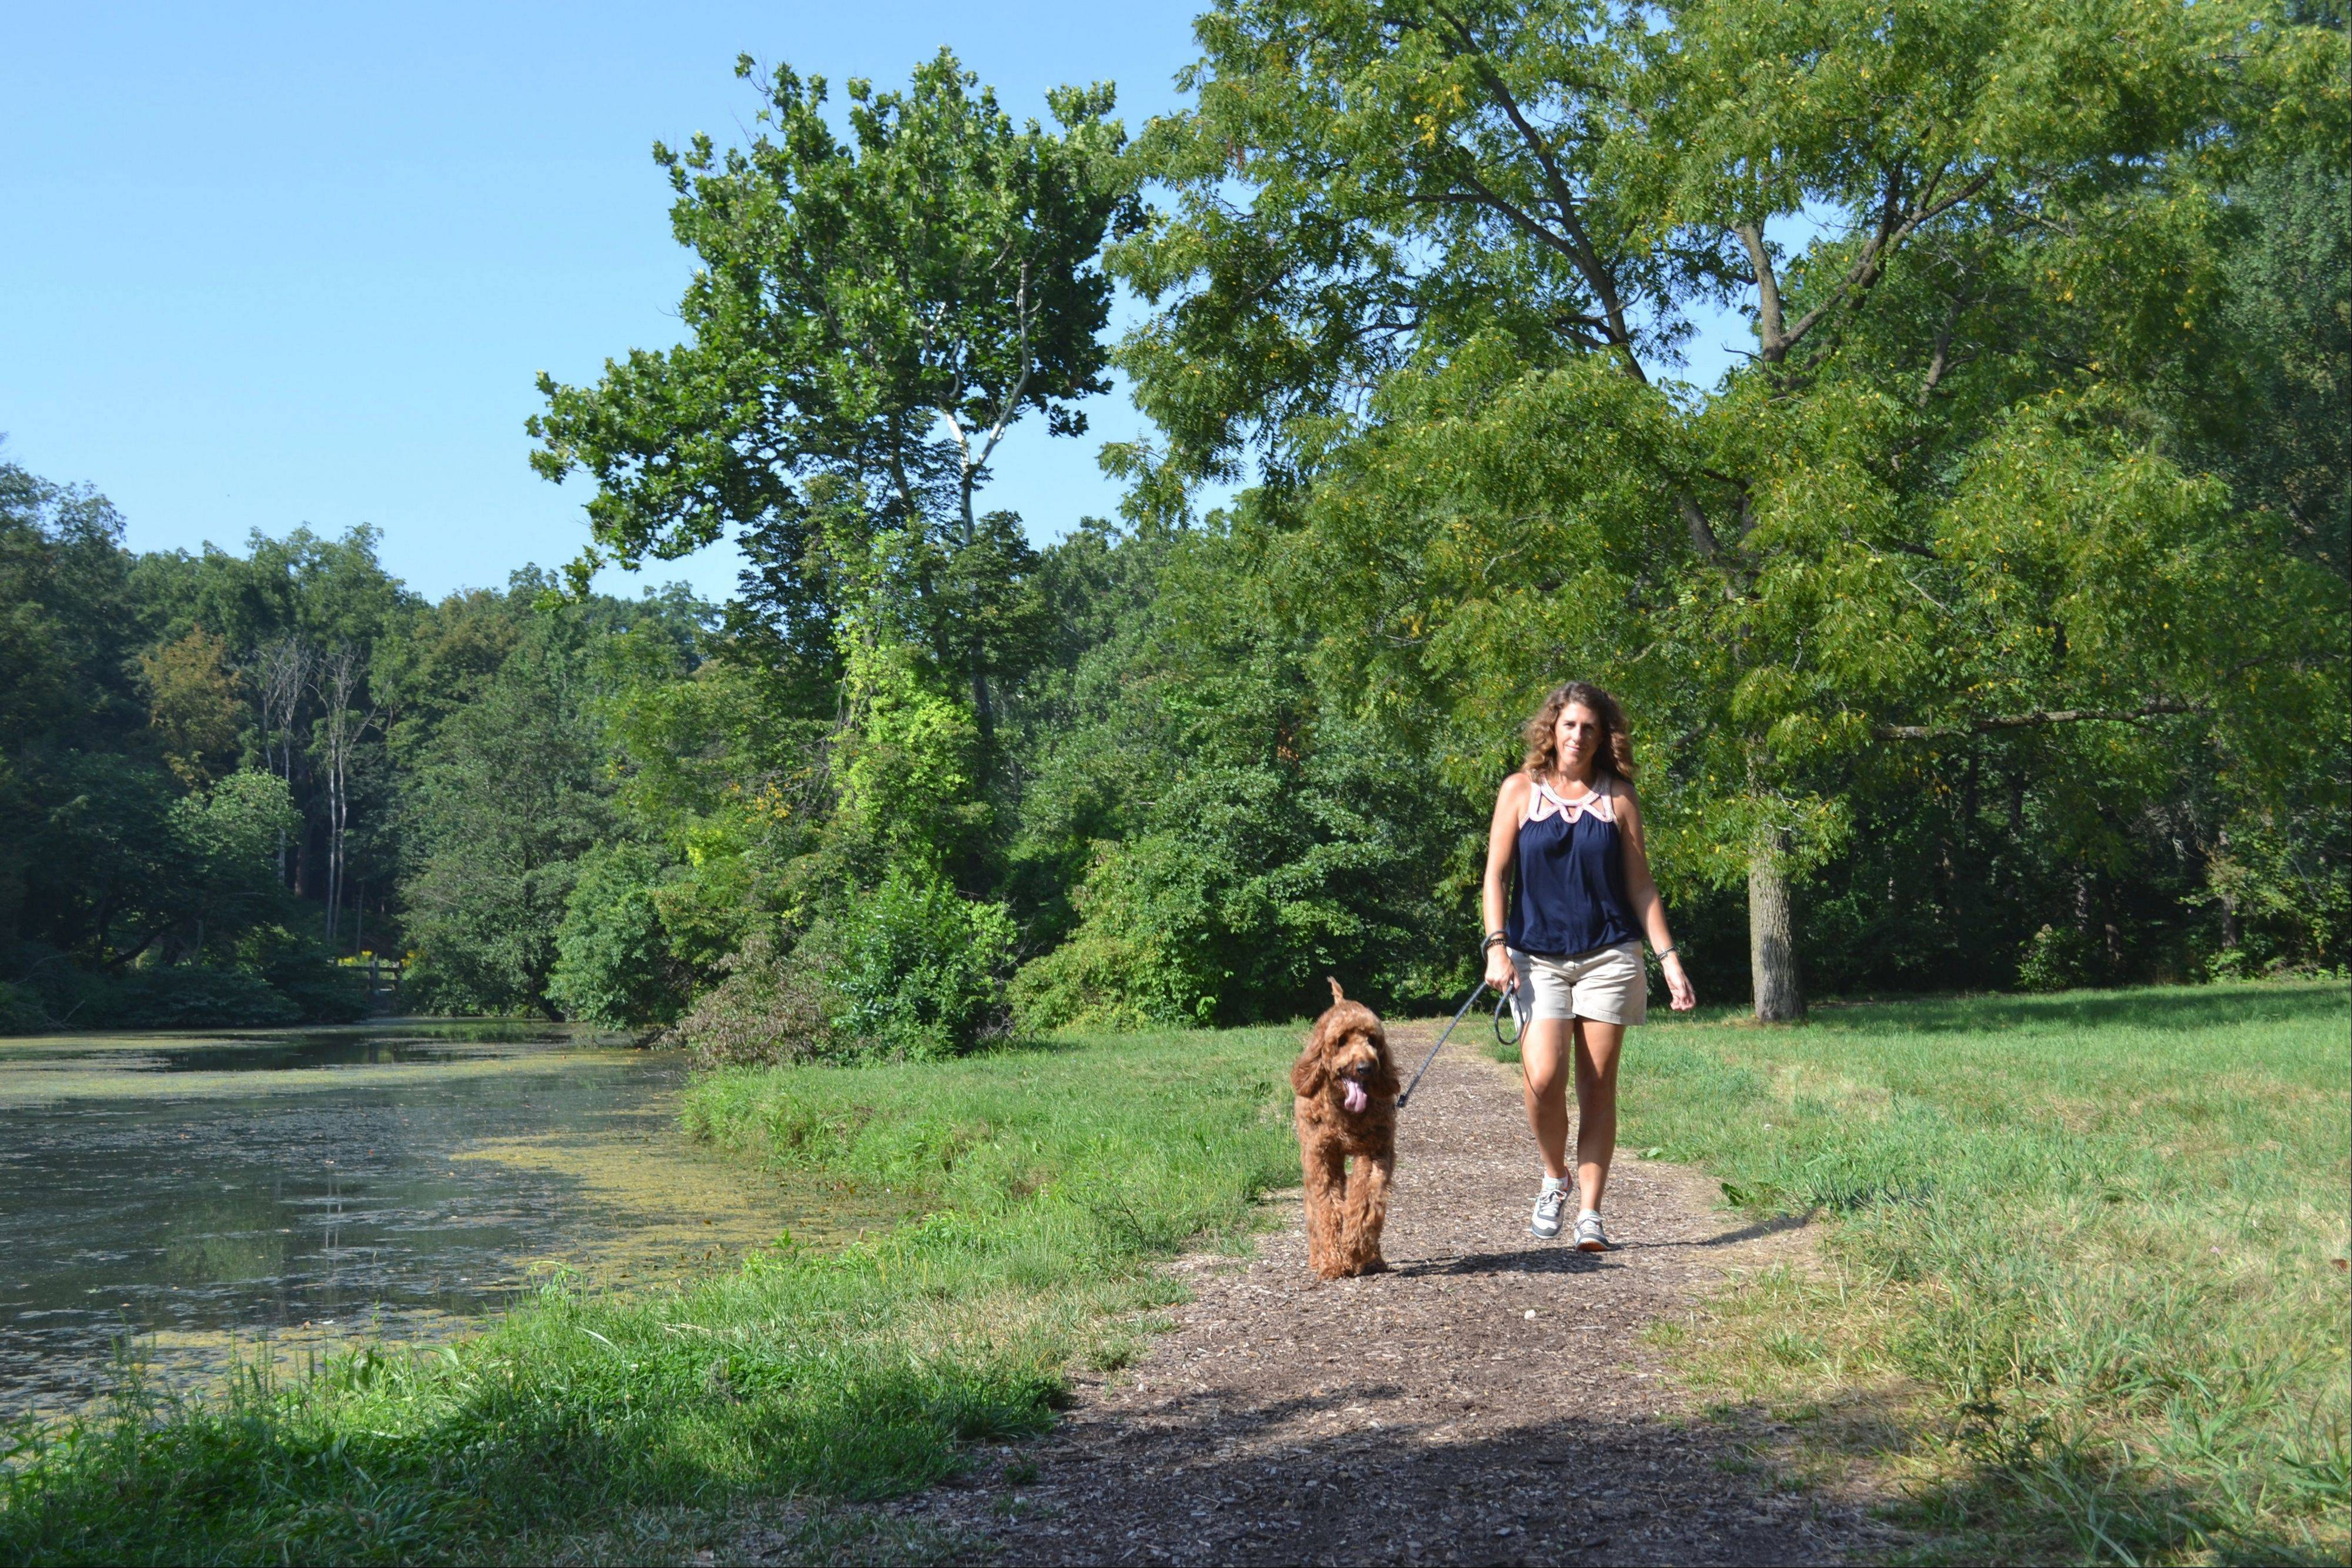 The Morton Arboretum in Lisle opens up to owners and their dogs for one day only as part of the Tails on the Trails event on Saturday, Sept. 14.